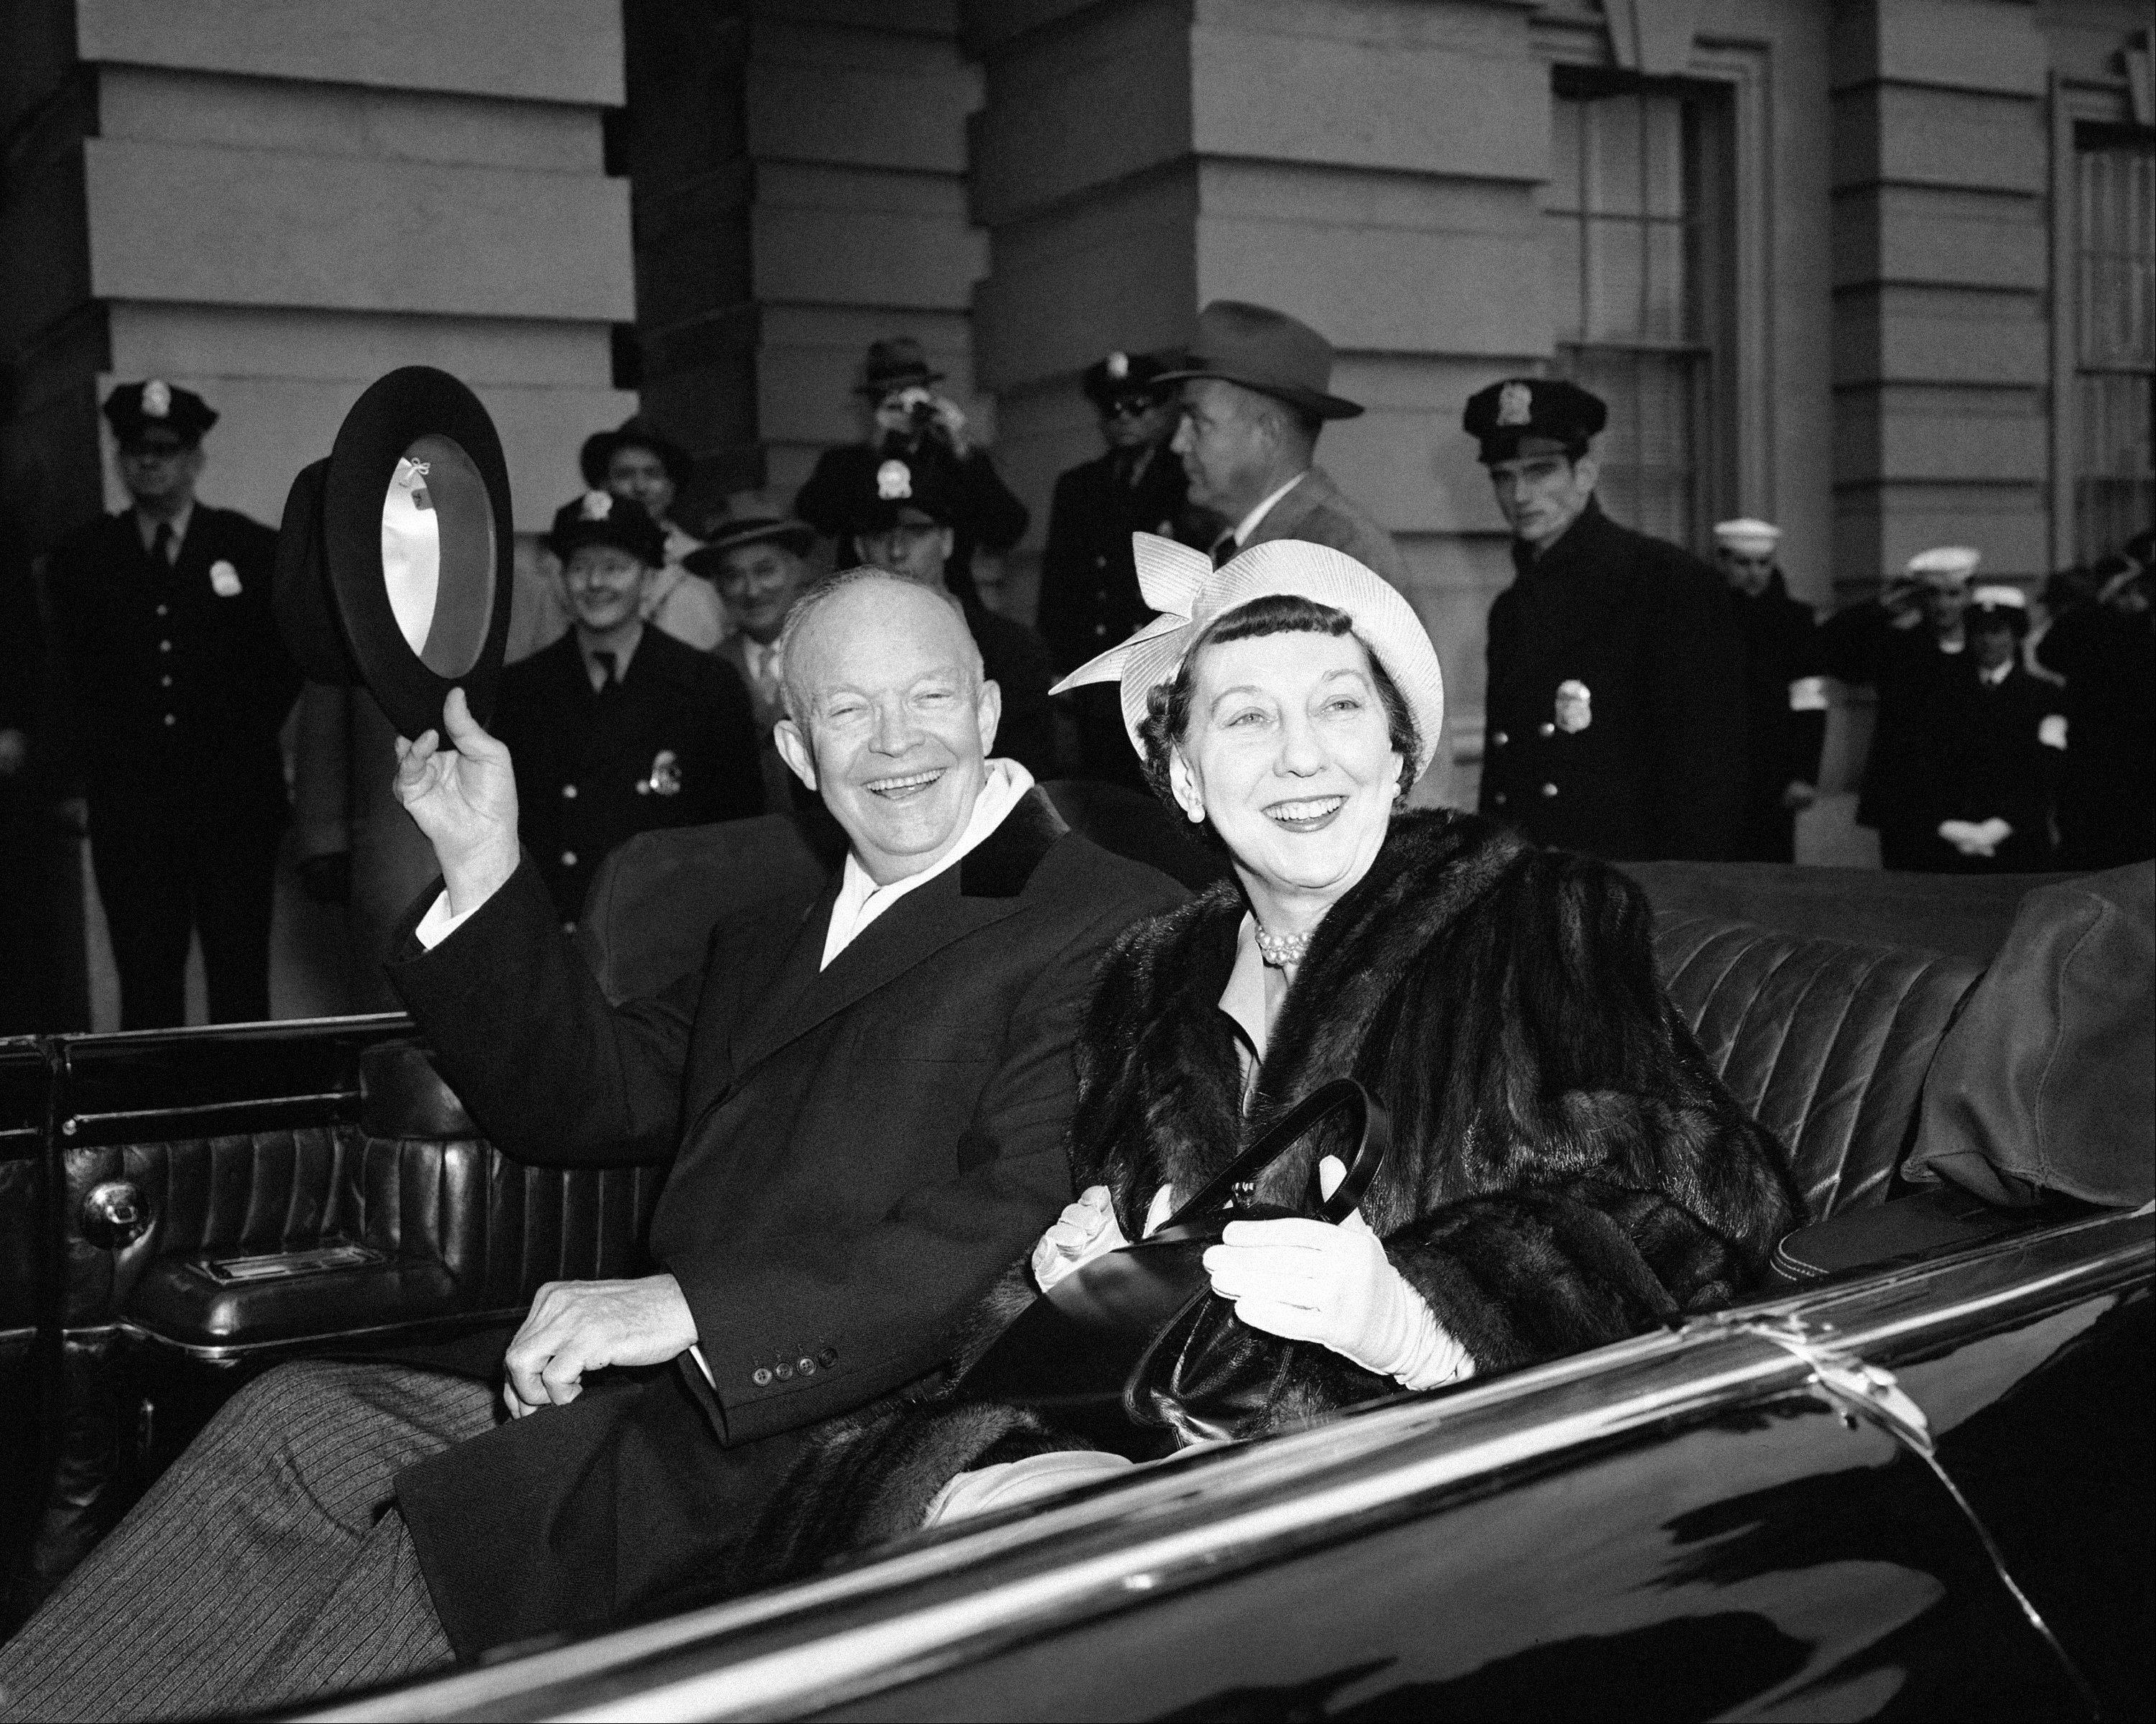 President Dwight Eisenhower and Mrs Mamie Eisenhower sit in the open car and wave as they leave the Capitol in Washington Jan. 21, 1957, just before swinging into Constitution Avenue on traditional inaugural parade route.